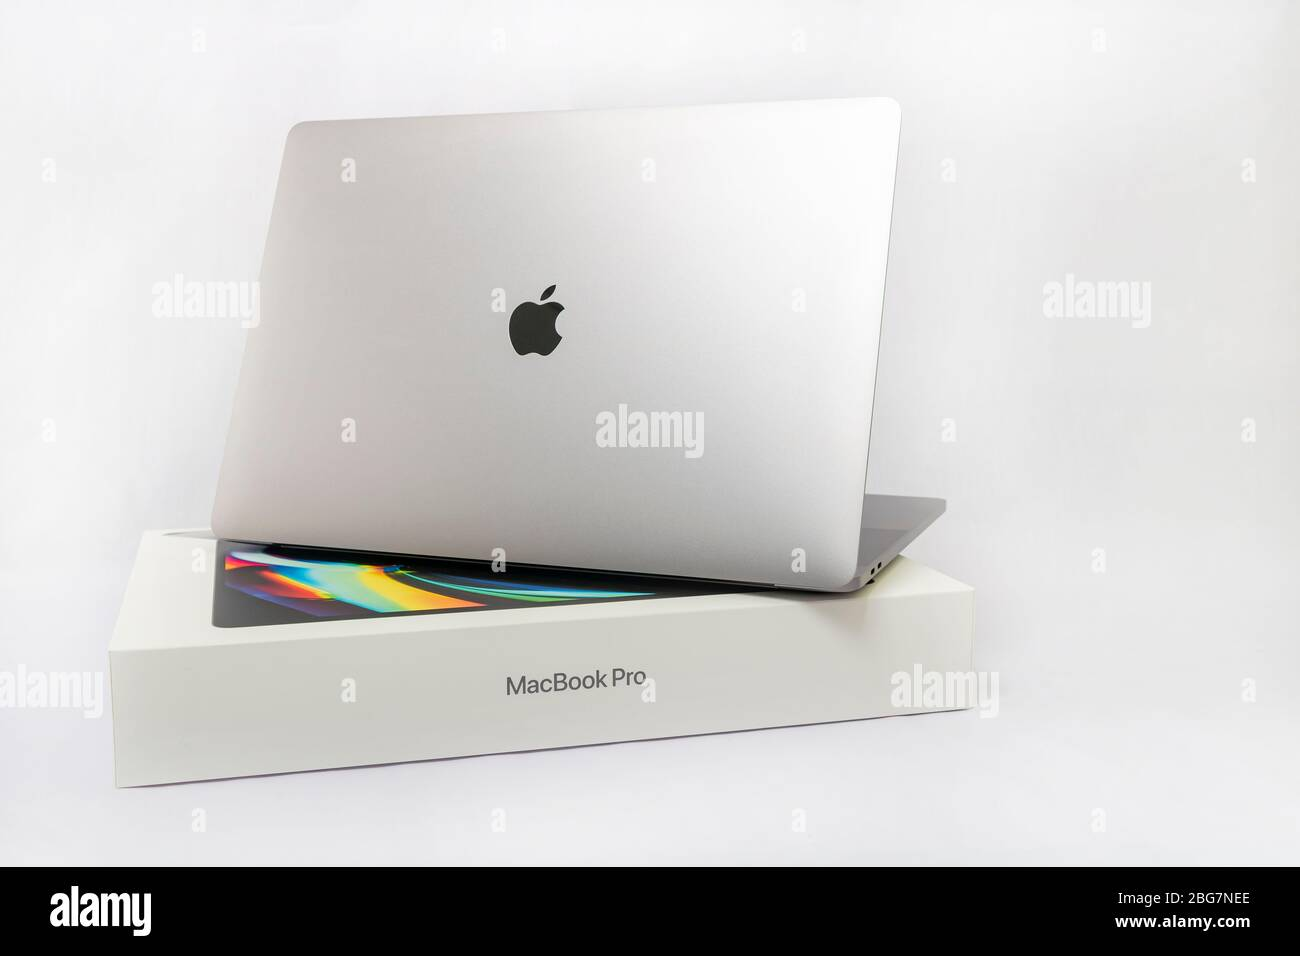 Bangkok, Thailand - April 5, 2020: A white box and 2020 Apple MacBook Pro 16 inch super retina display which is produced by Apple company. Stock Photo